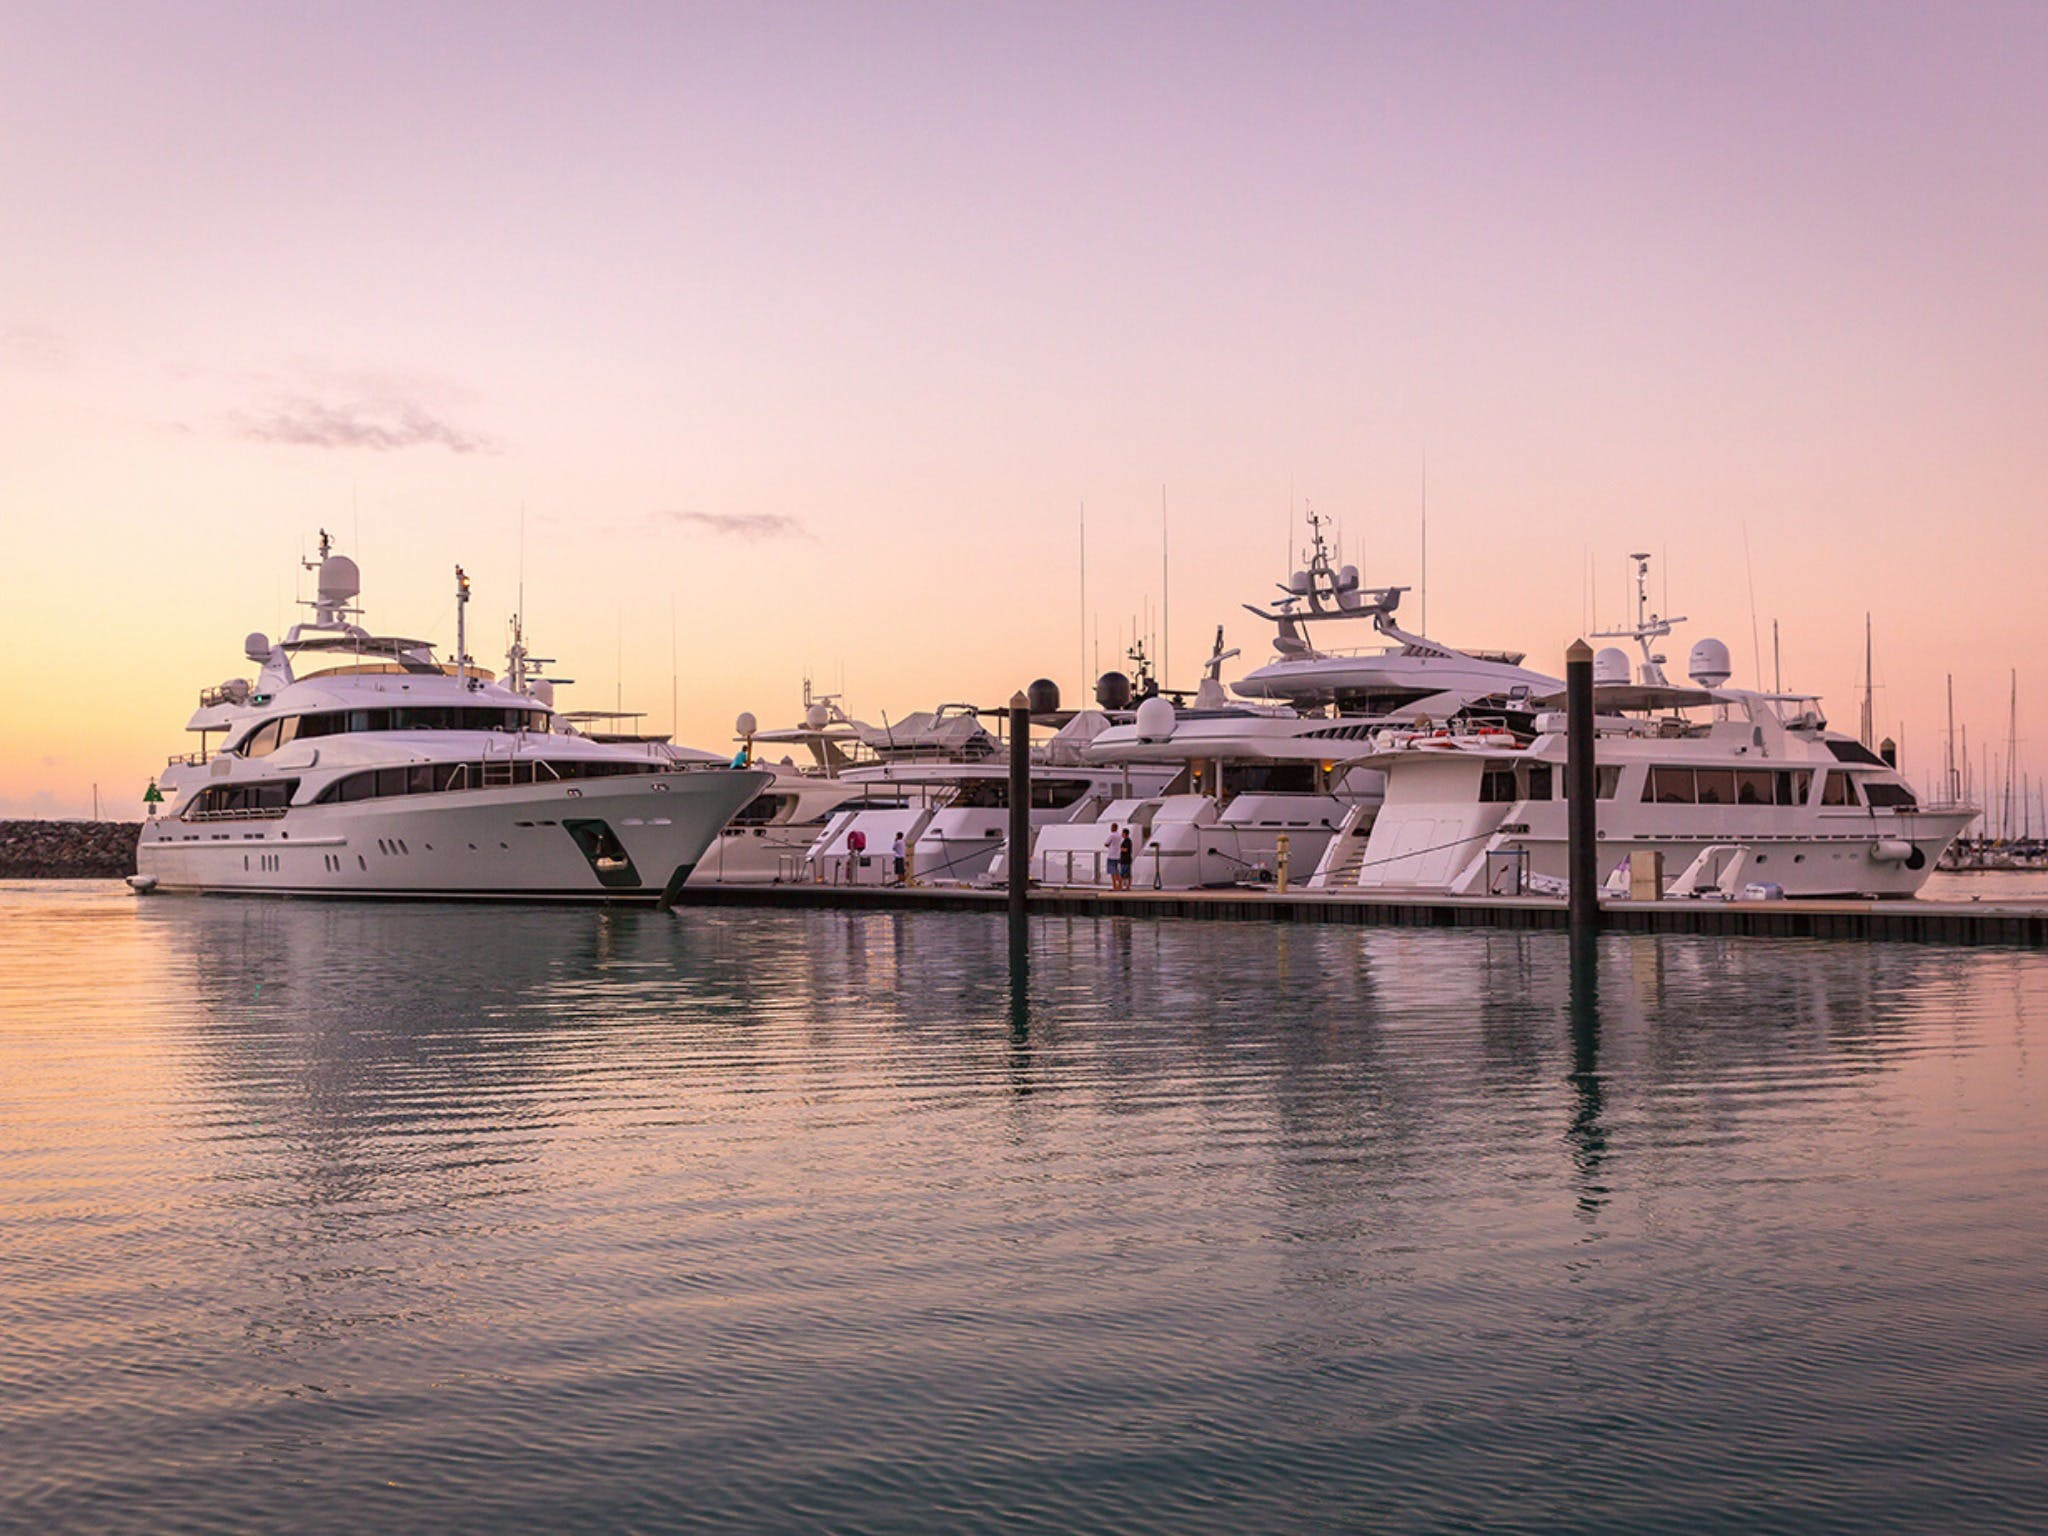 Australian Superyacht Rendezvous - Great Barrier Reef edition - Accommodation Fremantle